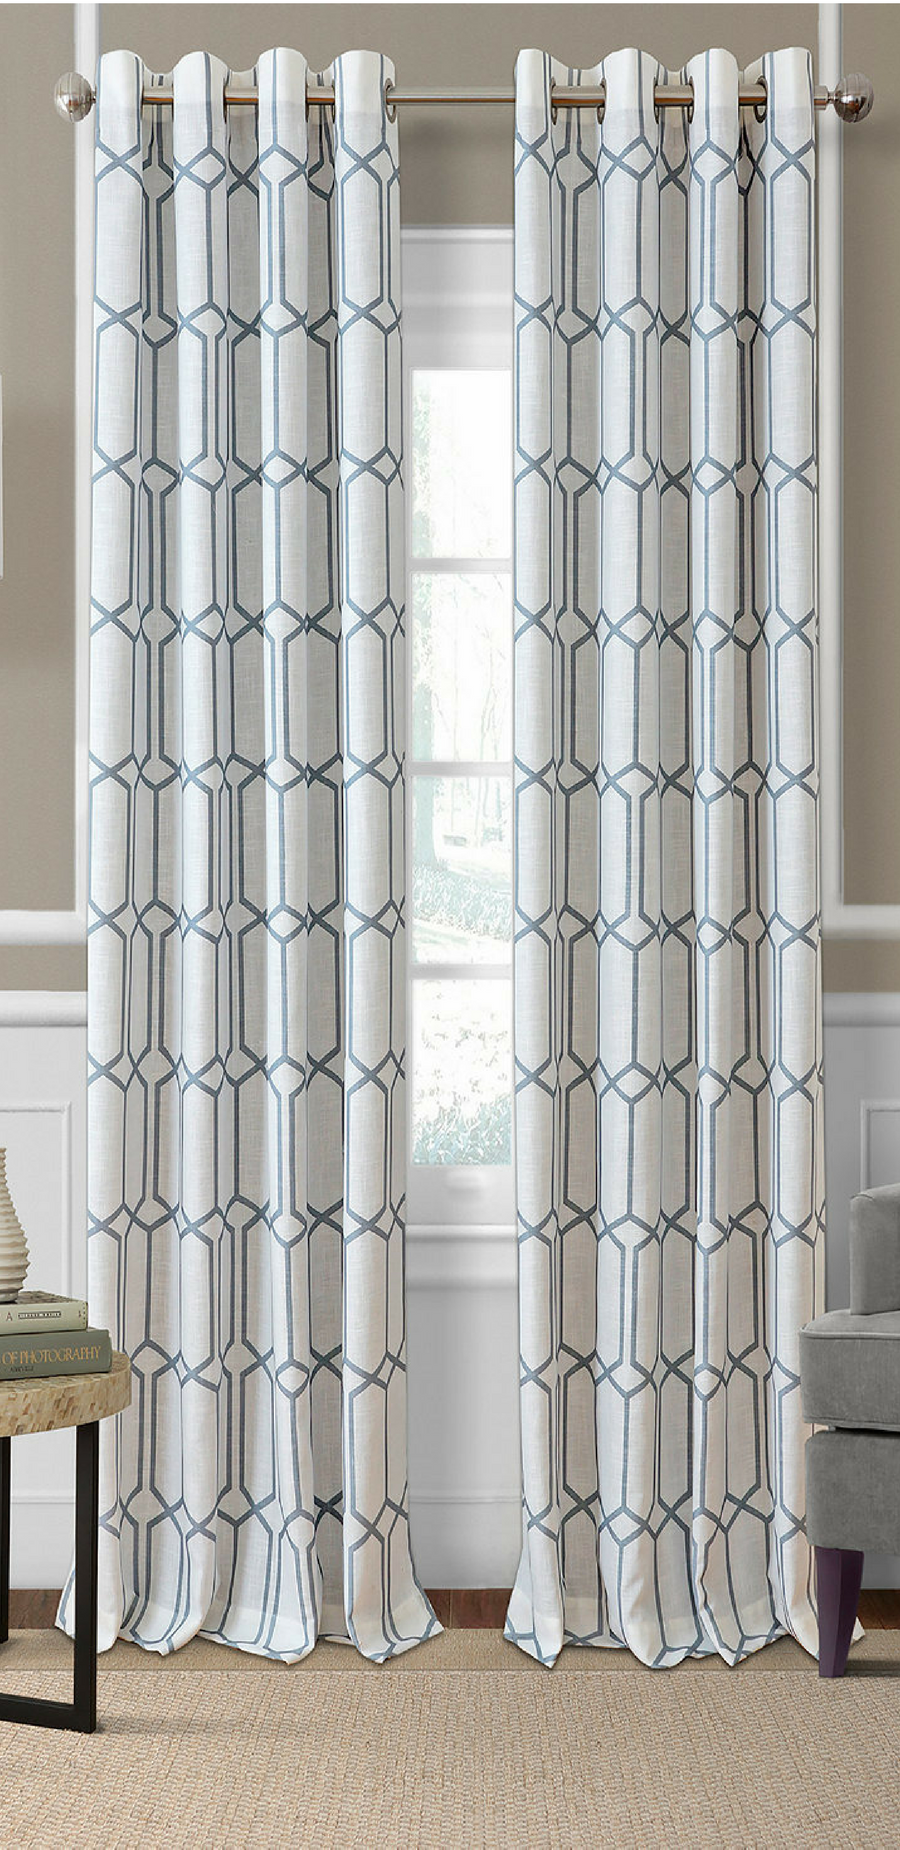 Gray curtains bedroom a refined geometric pattern and an energyefficient blackout design